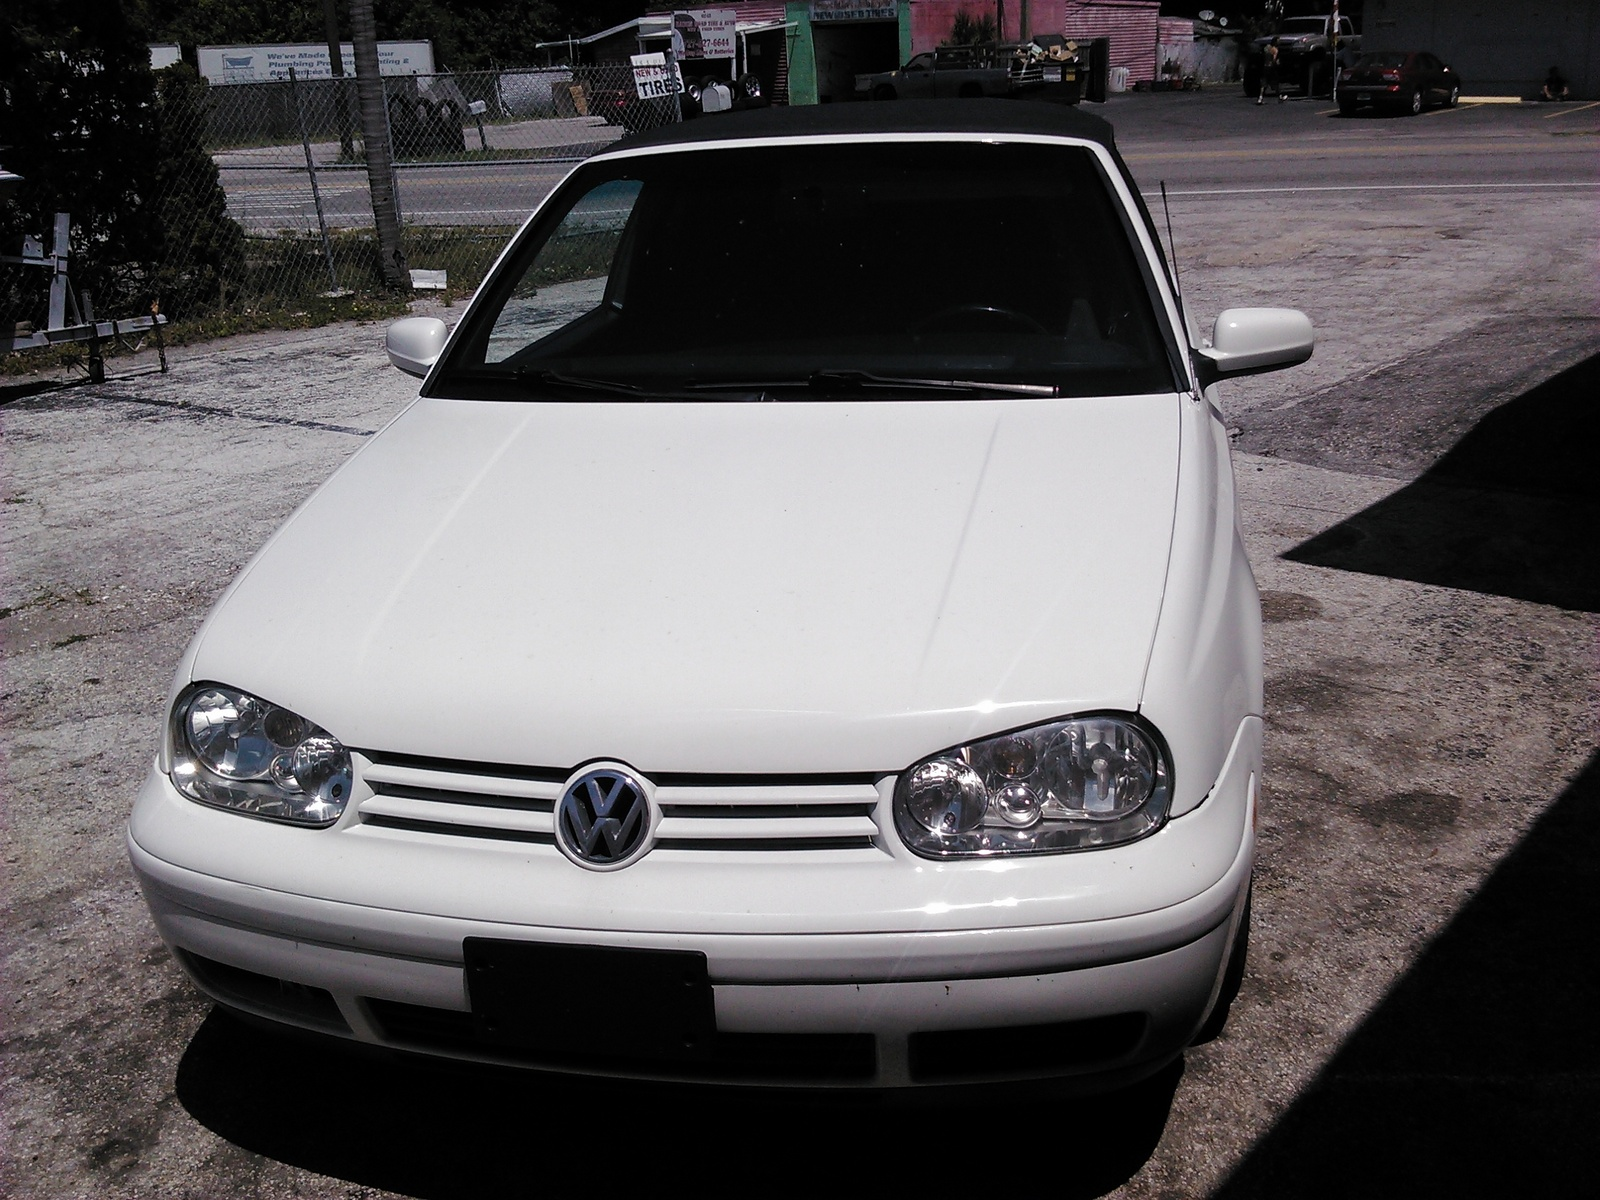 Picture of 1999 Volkswagen Cabrio 2 Dr New GL Convertible